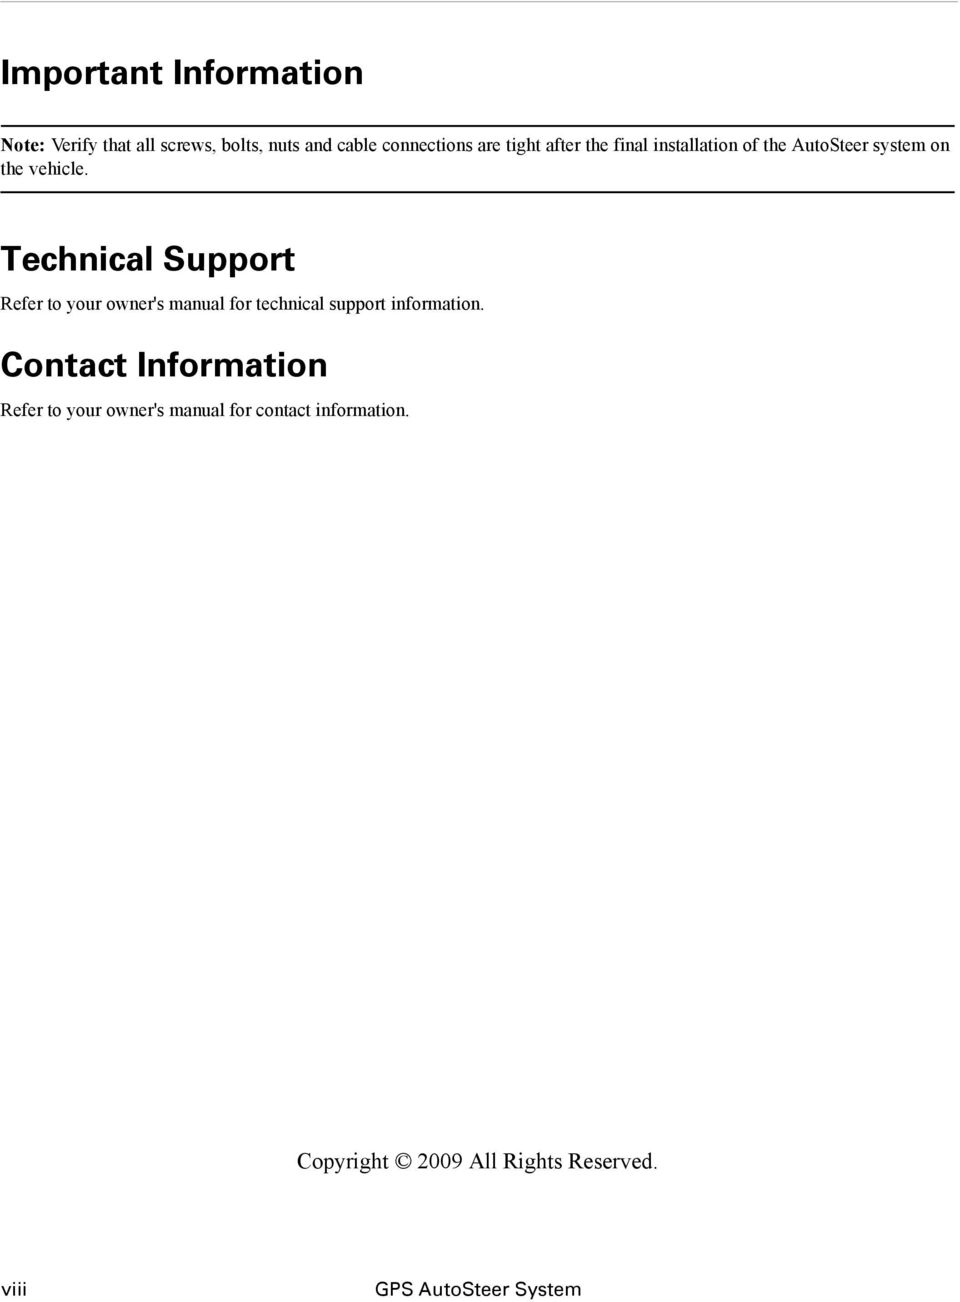 Technical Support Refer to your owner's manual for technical support information.